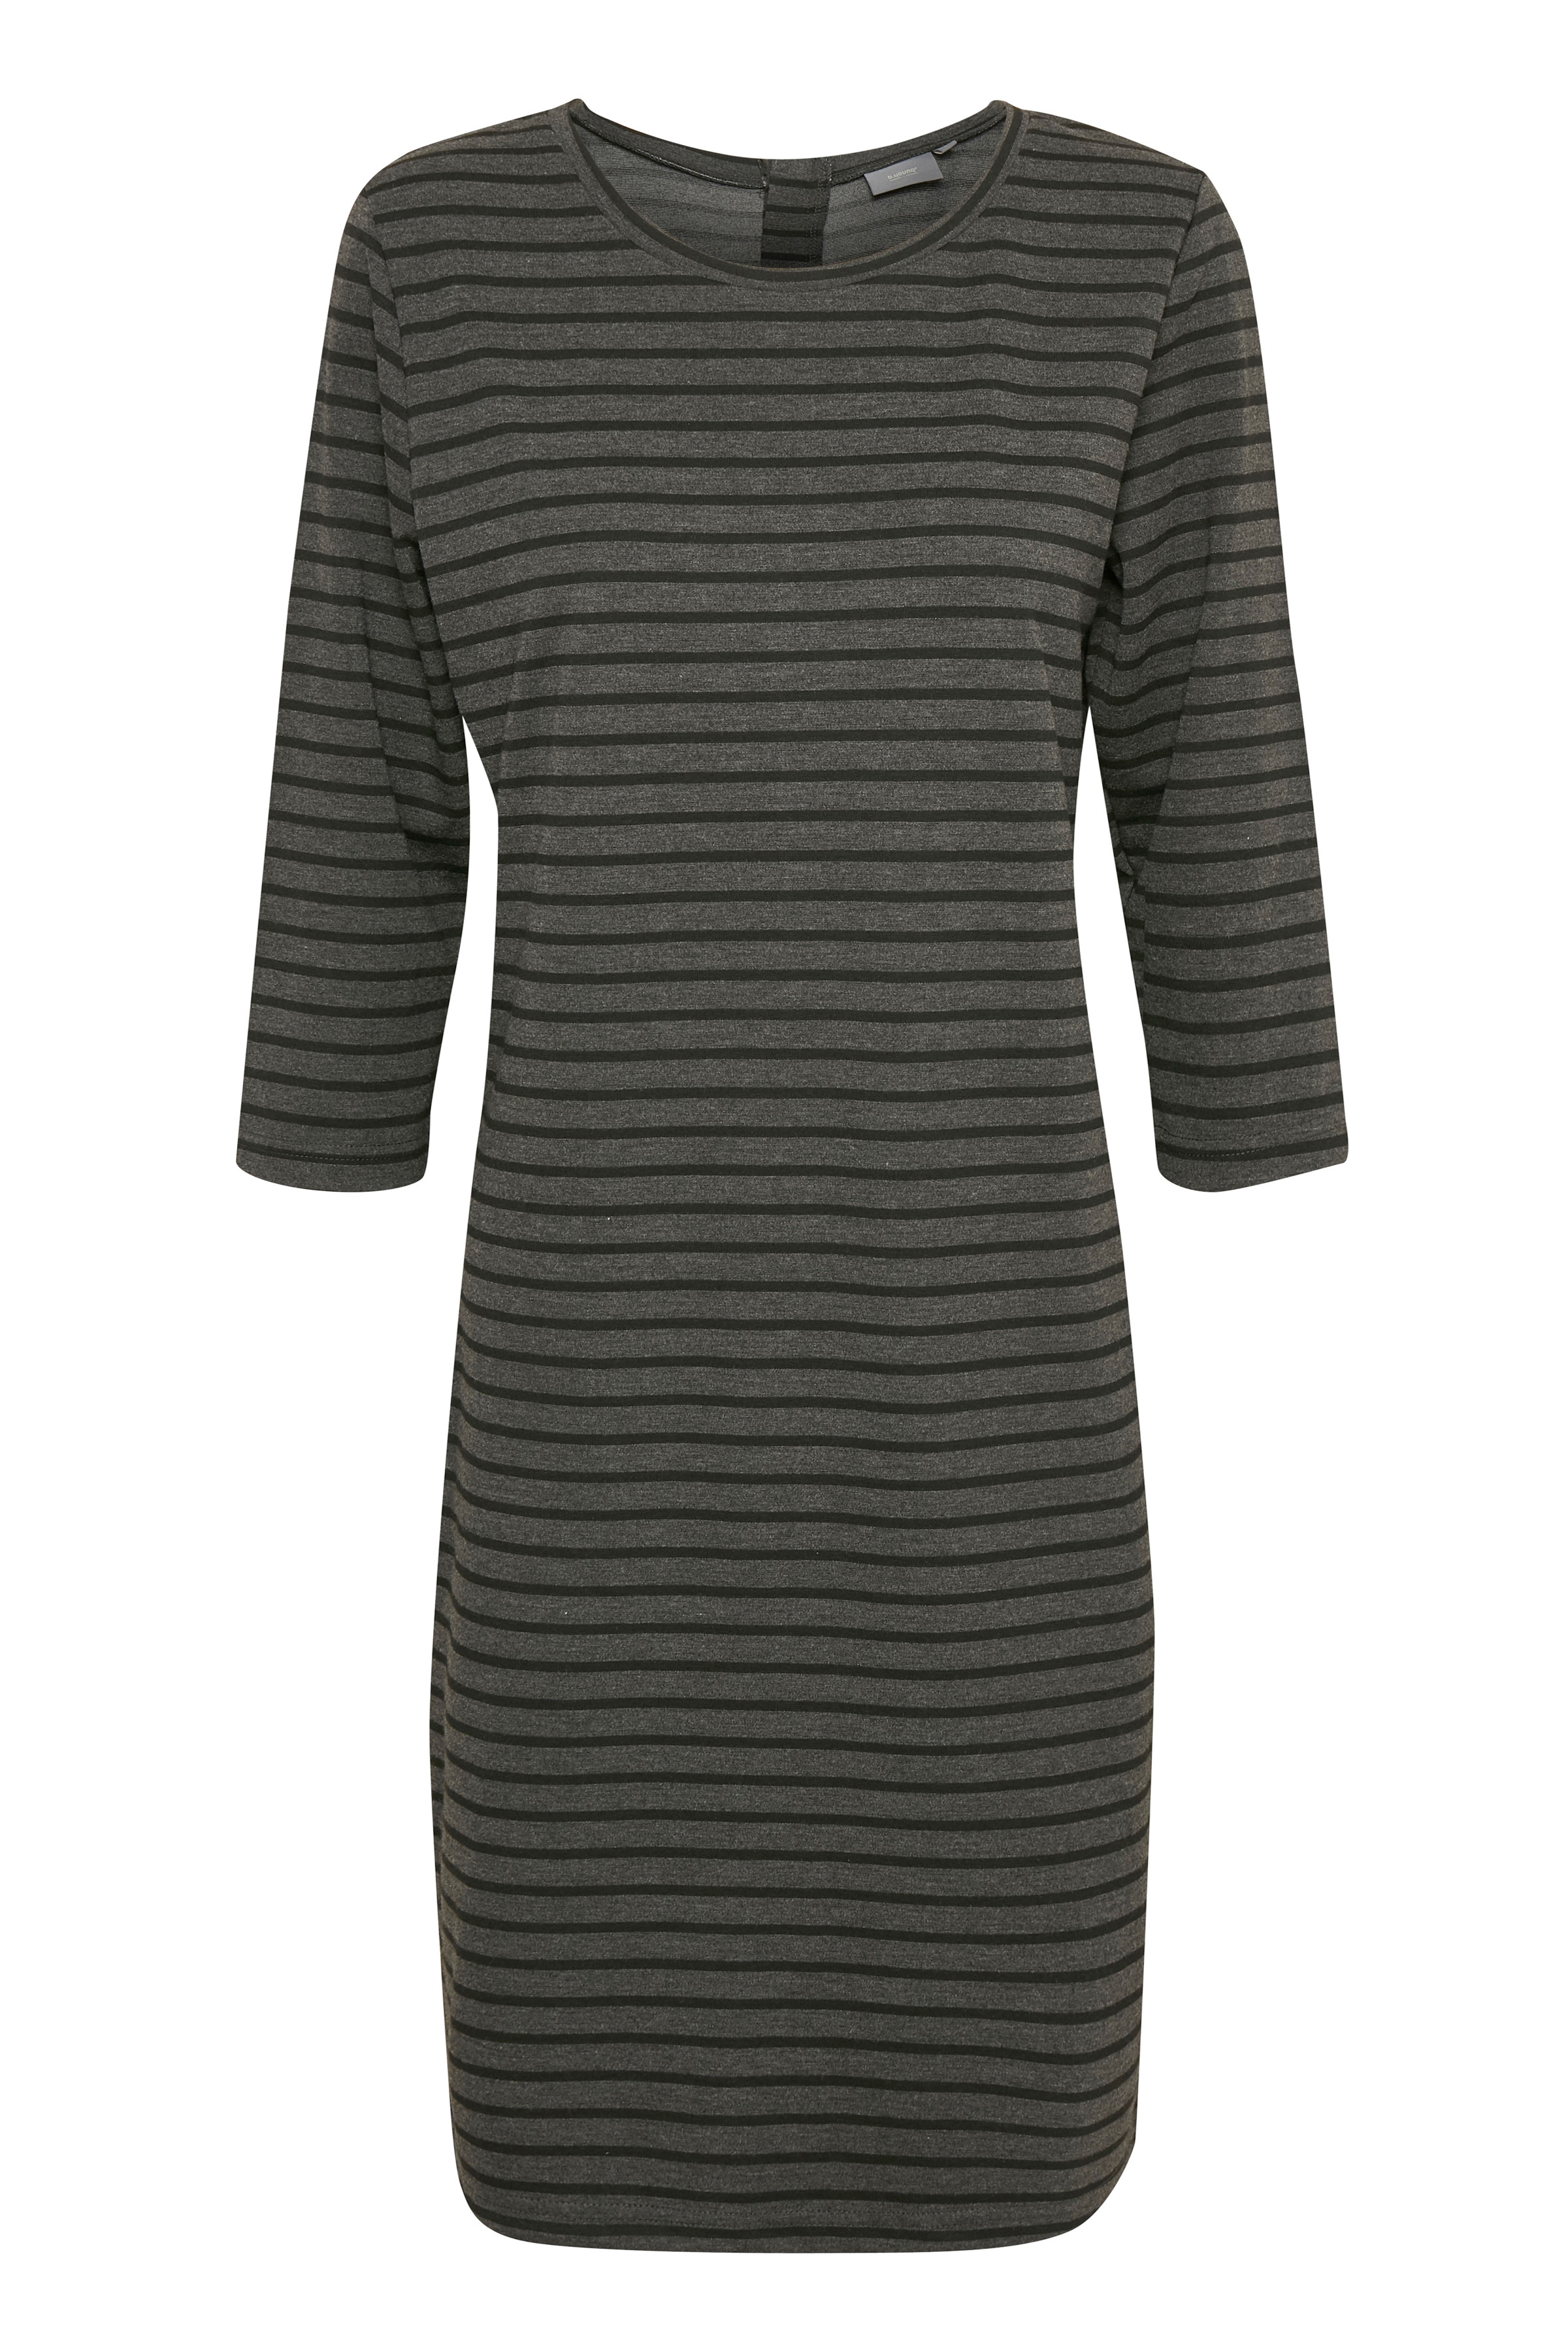 Dark grey mel. combi Jersey dress from b.young – Buy Dark grey mel. combi Jersey dress from size XS-XXL here